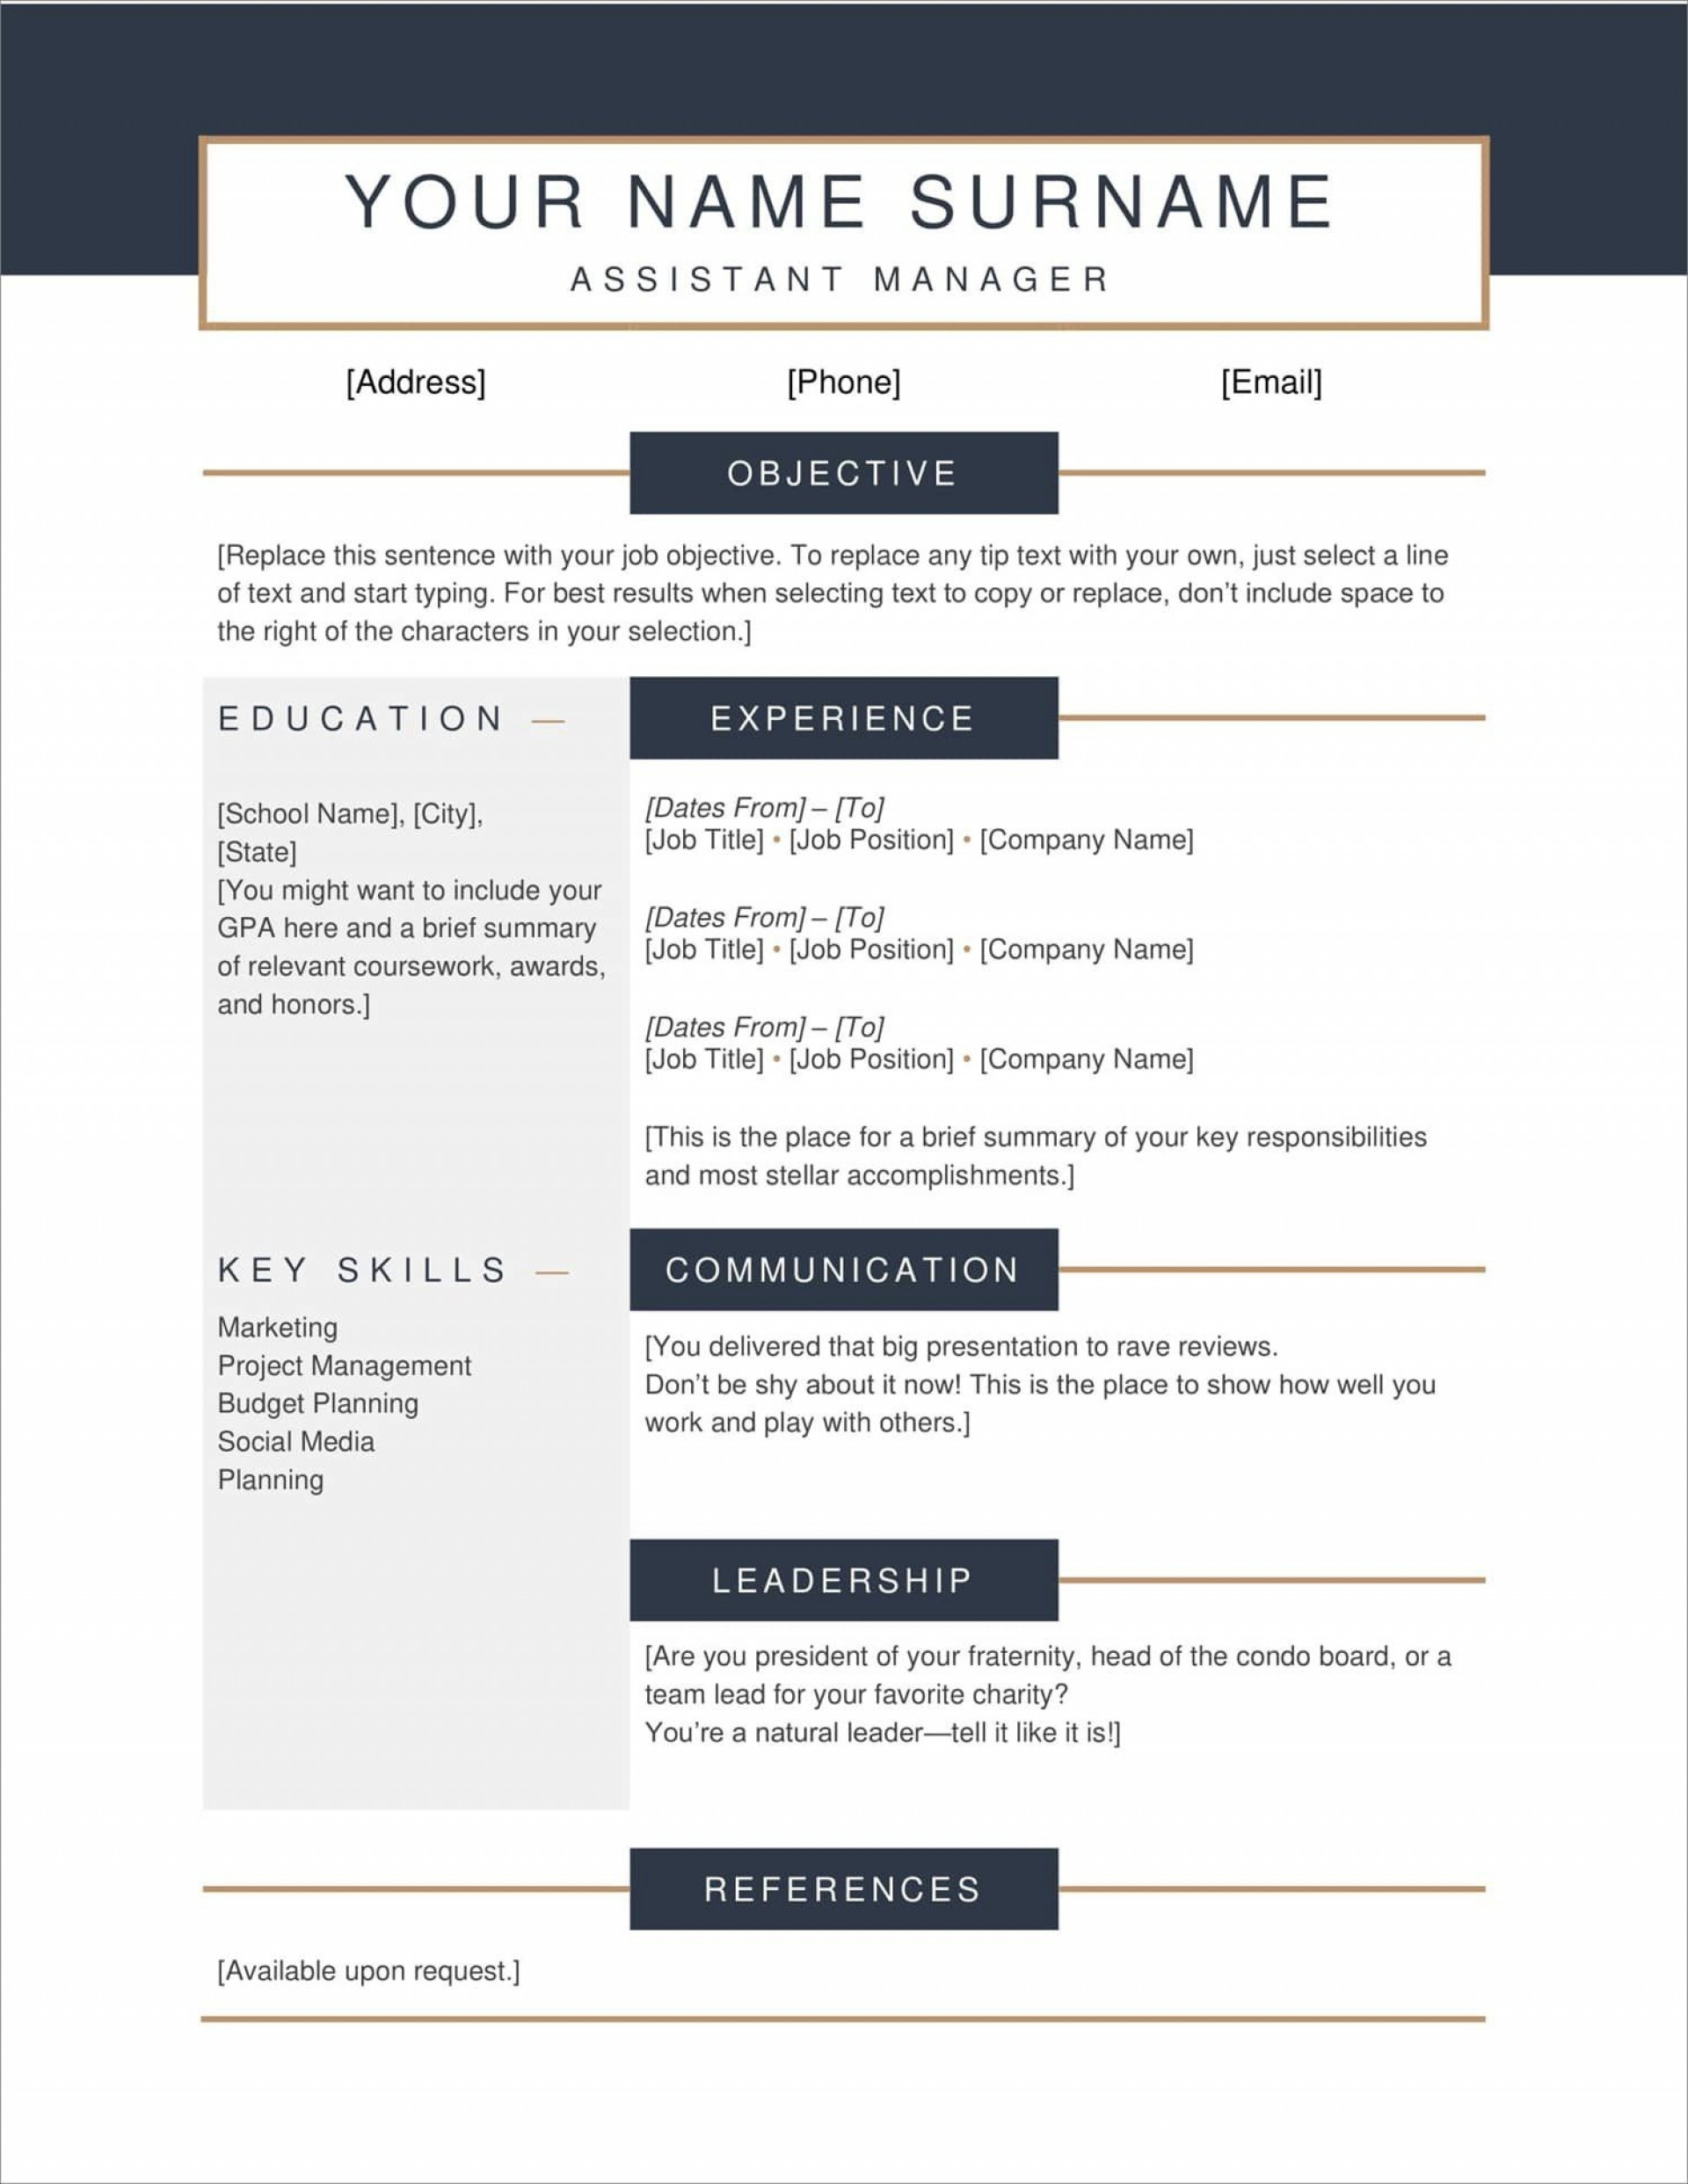 005 Unique Best Free Resume Template 2020 Highest Clarity  Word Review1920